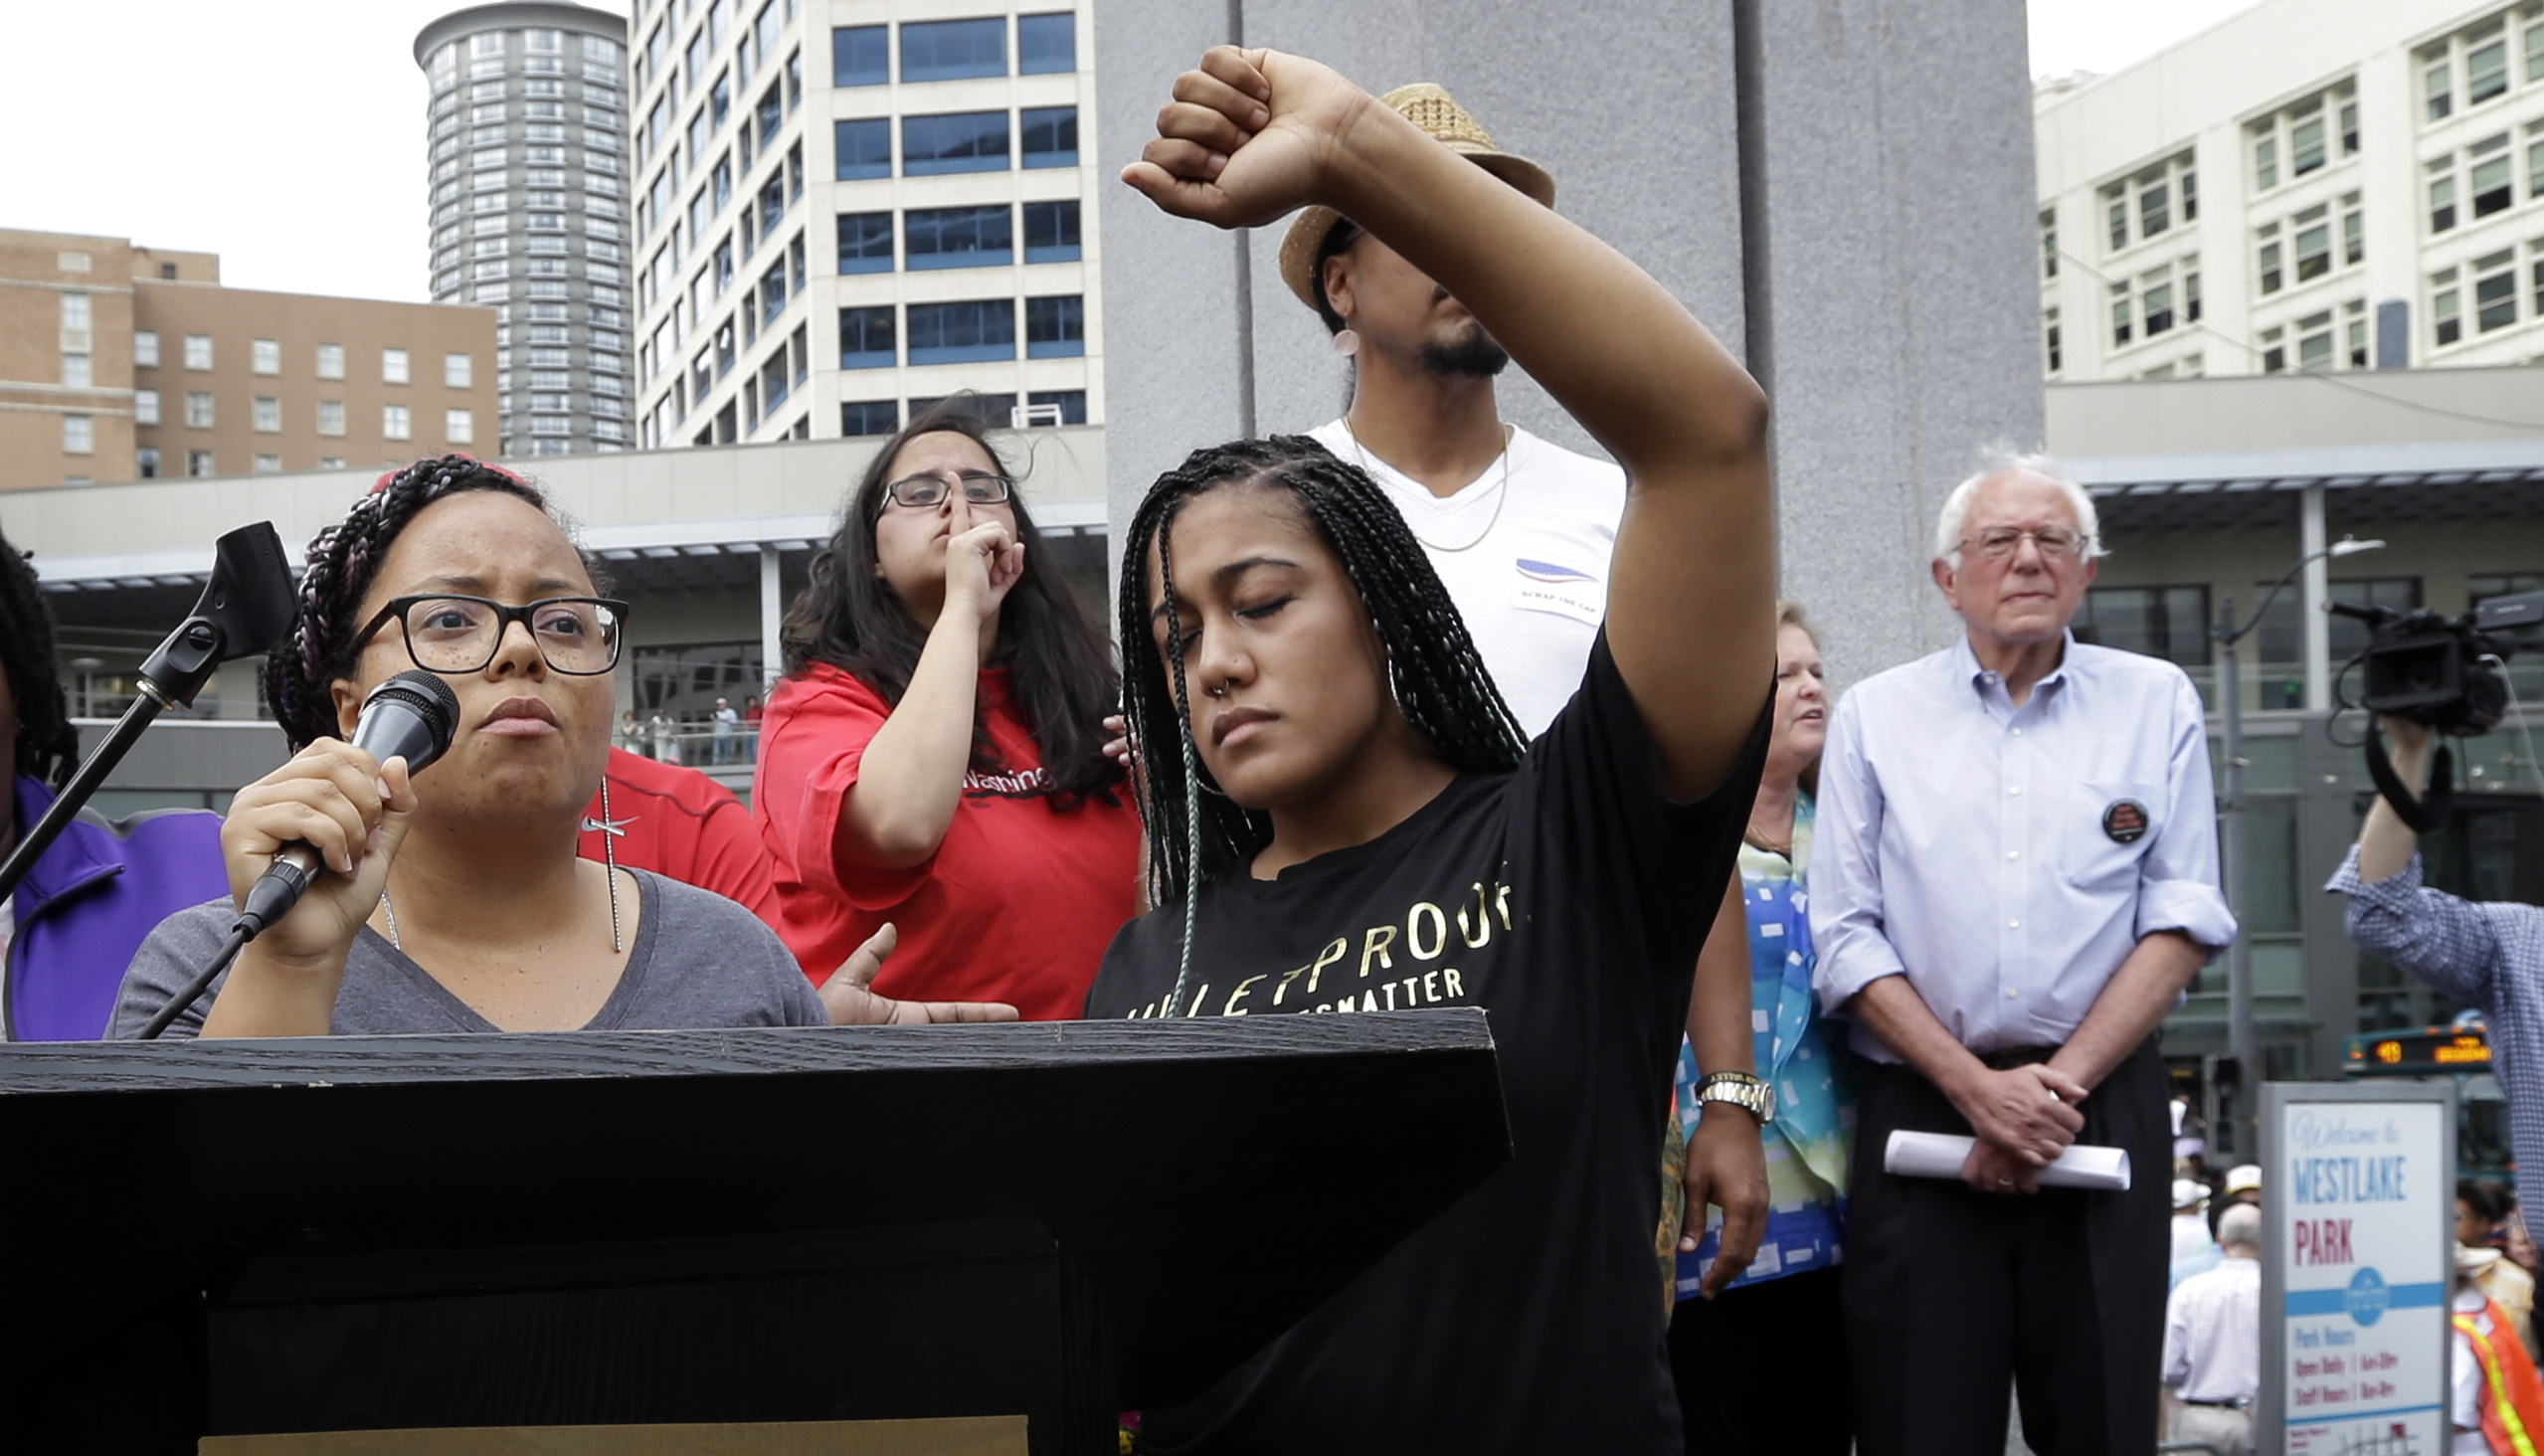 Black Lives Matter, Bernie Sanders, white progressives, white liberals, institutional racism